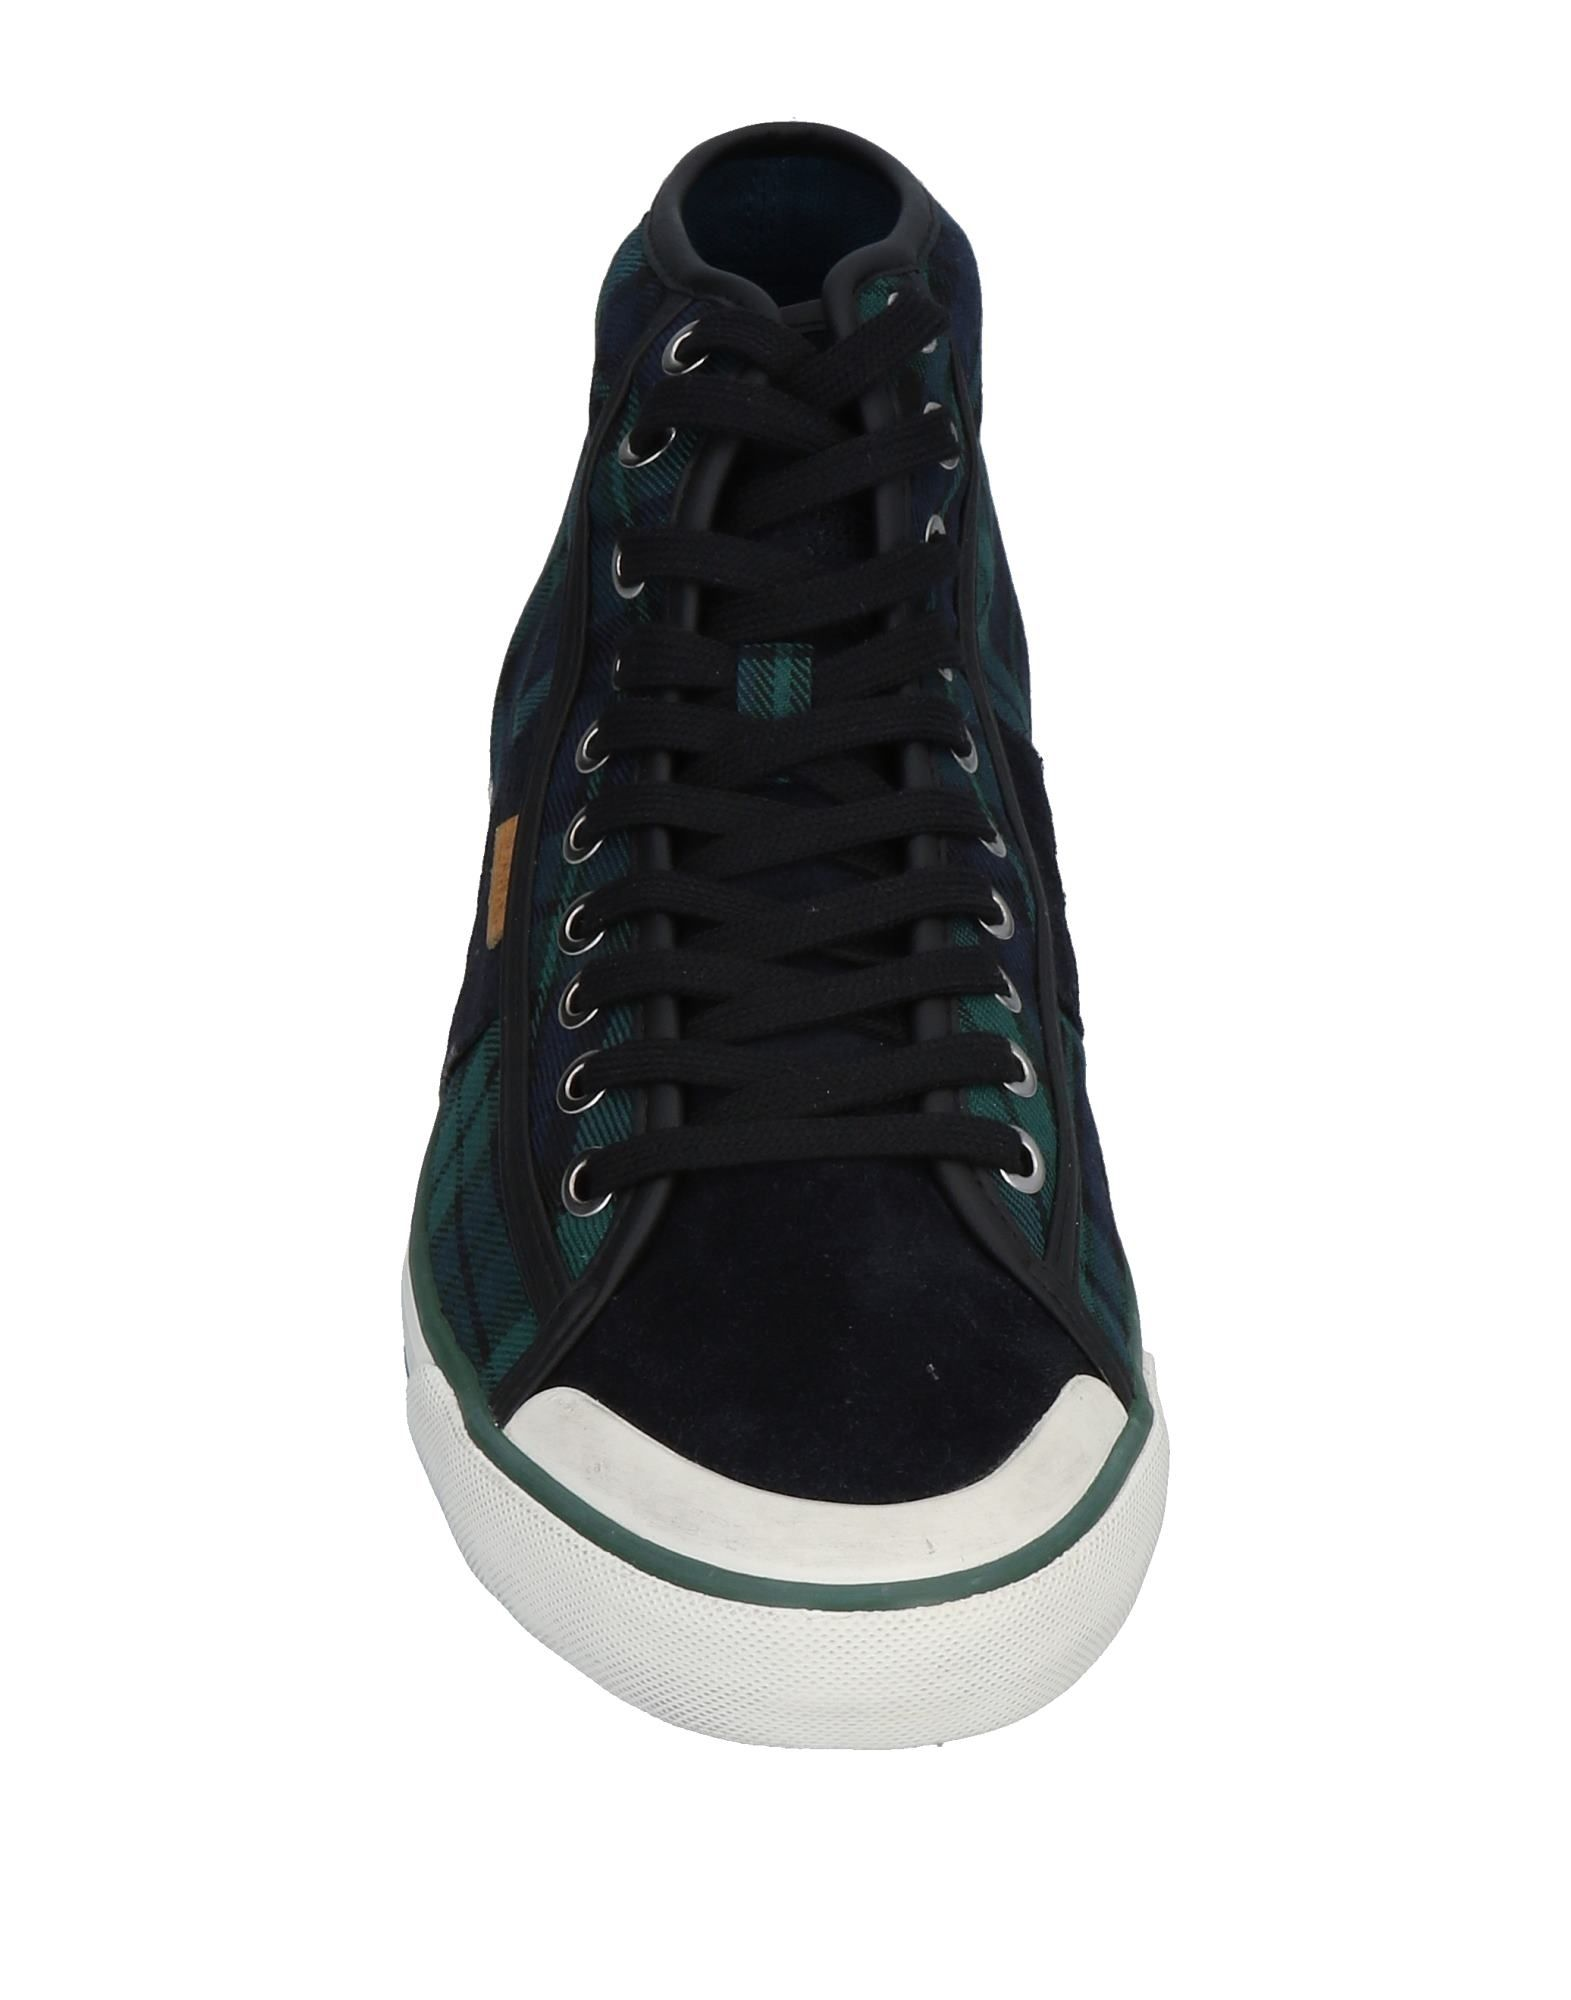 D.A.T.E. Sneakers - Men D.A.T.E. D.A.T.E. D.A.T.E. Sneakers online on  United Kingdom - 11497071KF a611a8